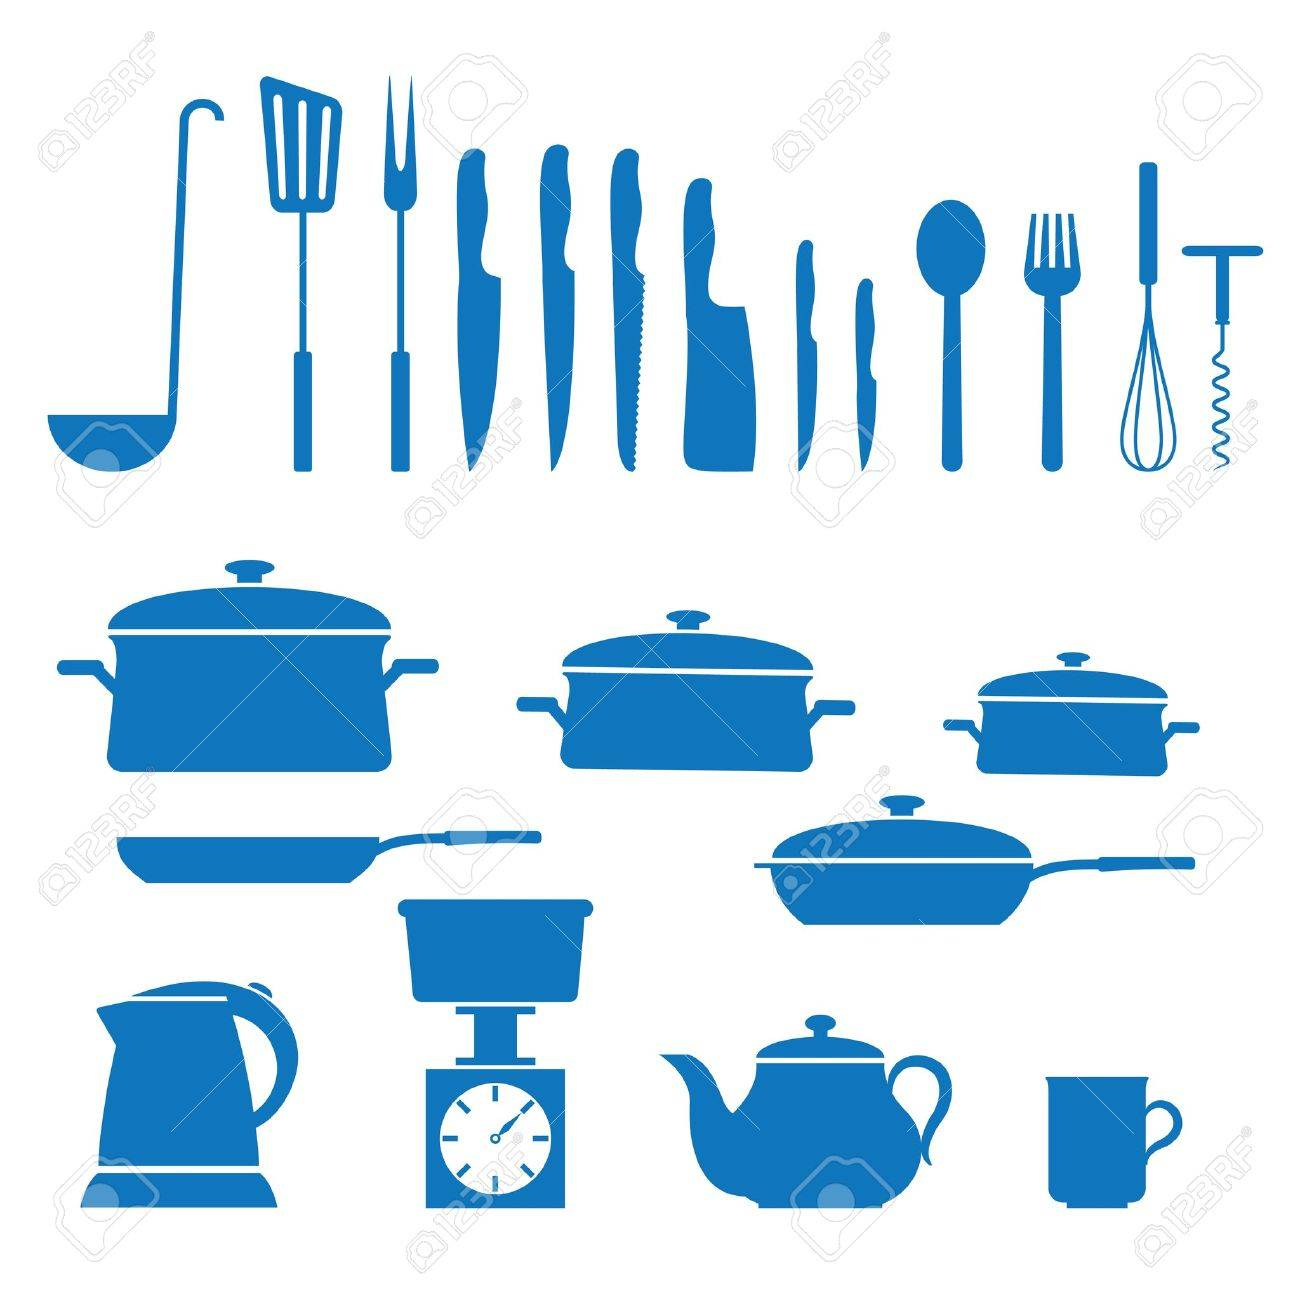 Uncategorized Kitchen Utensils And Appliances illustration of icons on kitchen appliances royalty free cliparts vector appliances